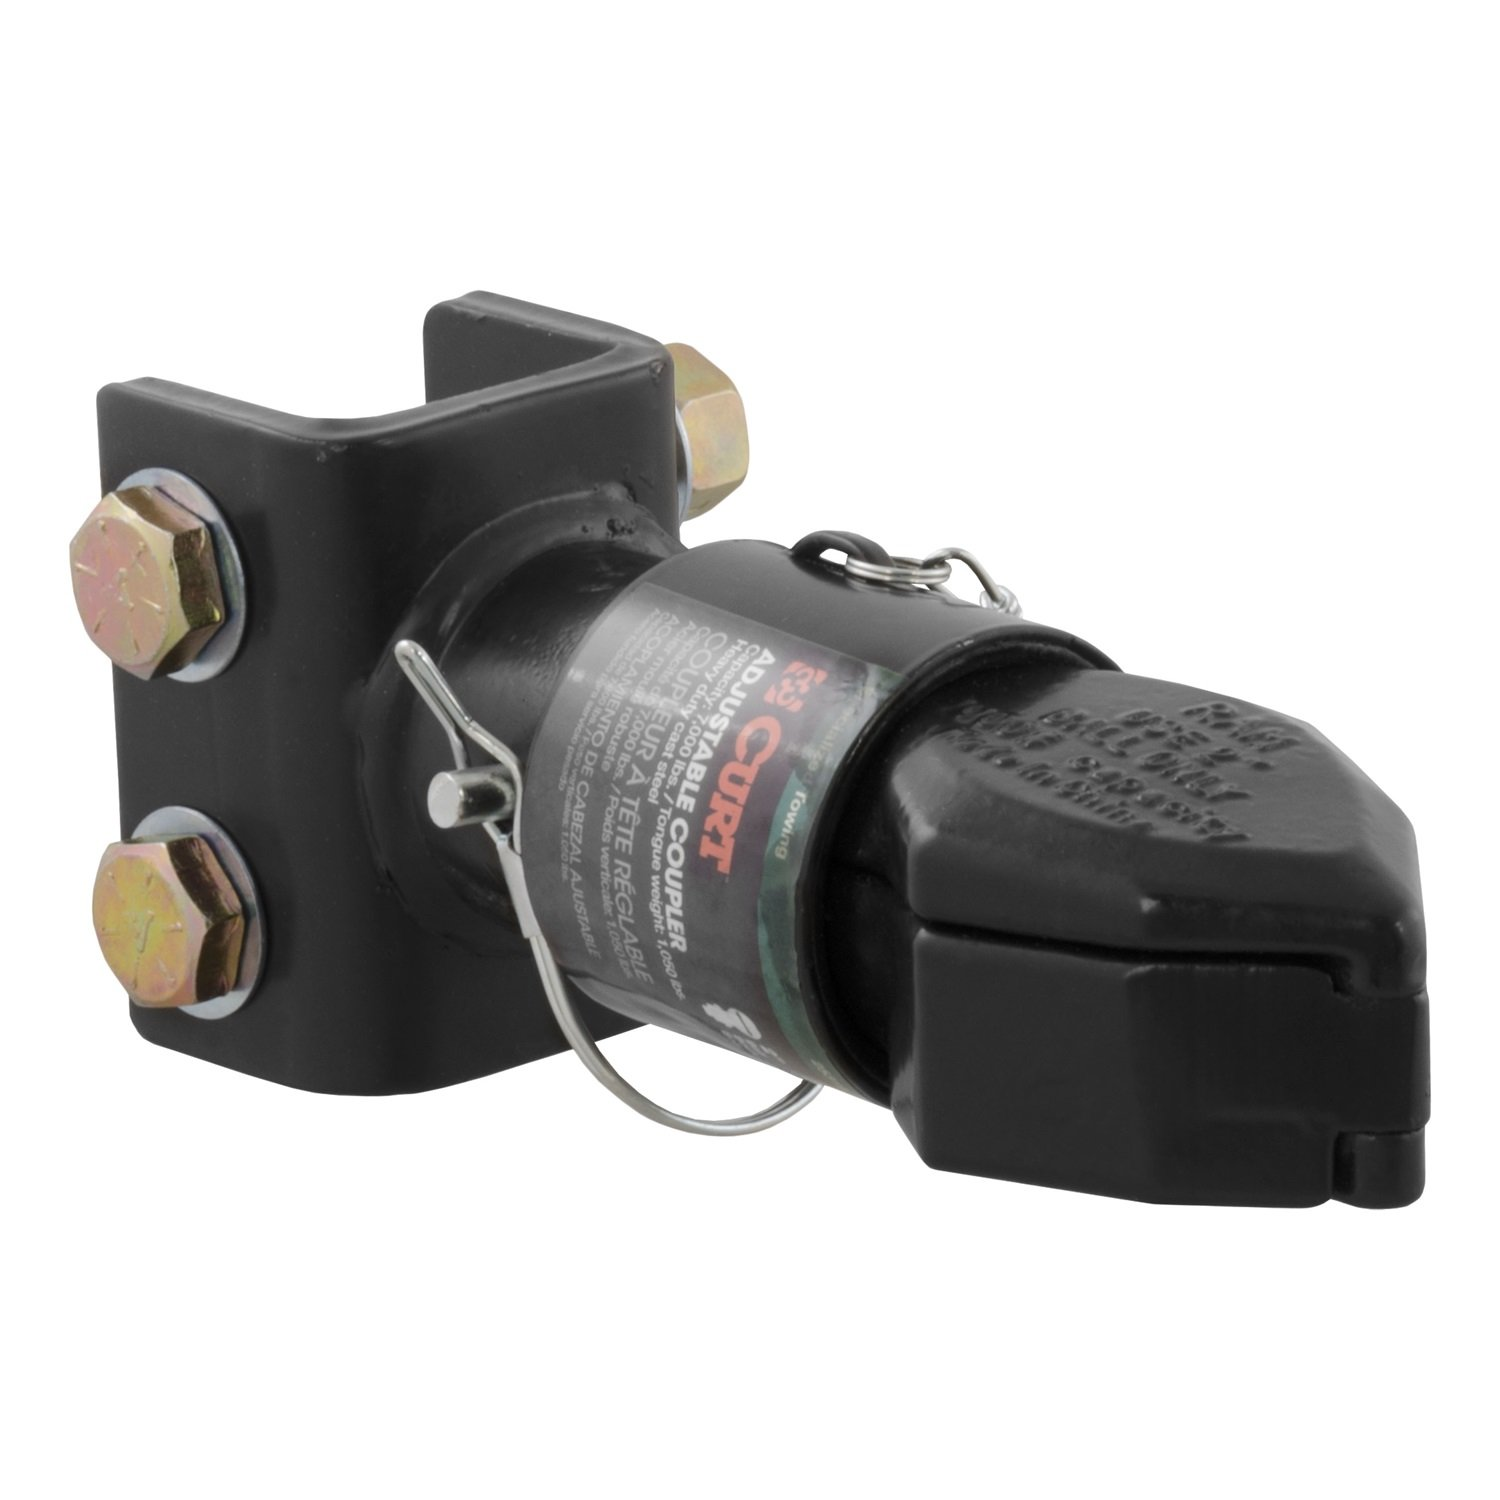 CURT 25319 Channel-Mount Adjustable Trailer Coupler Accepts 2-Inch Hitch Ball, 7,000 lbs.